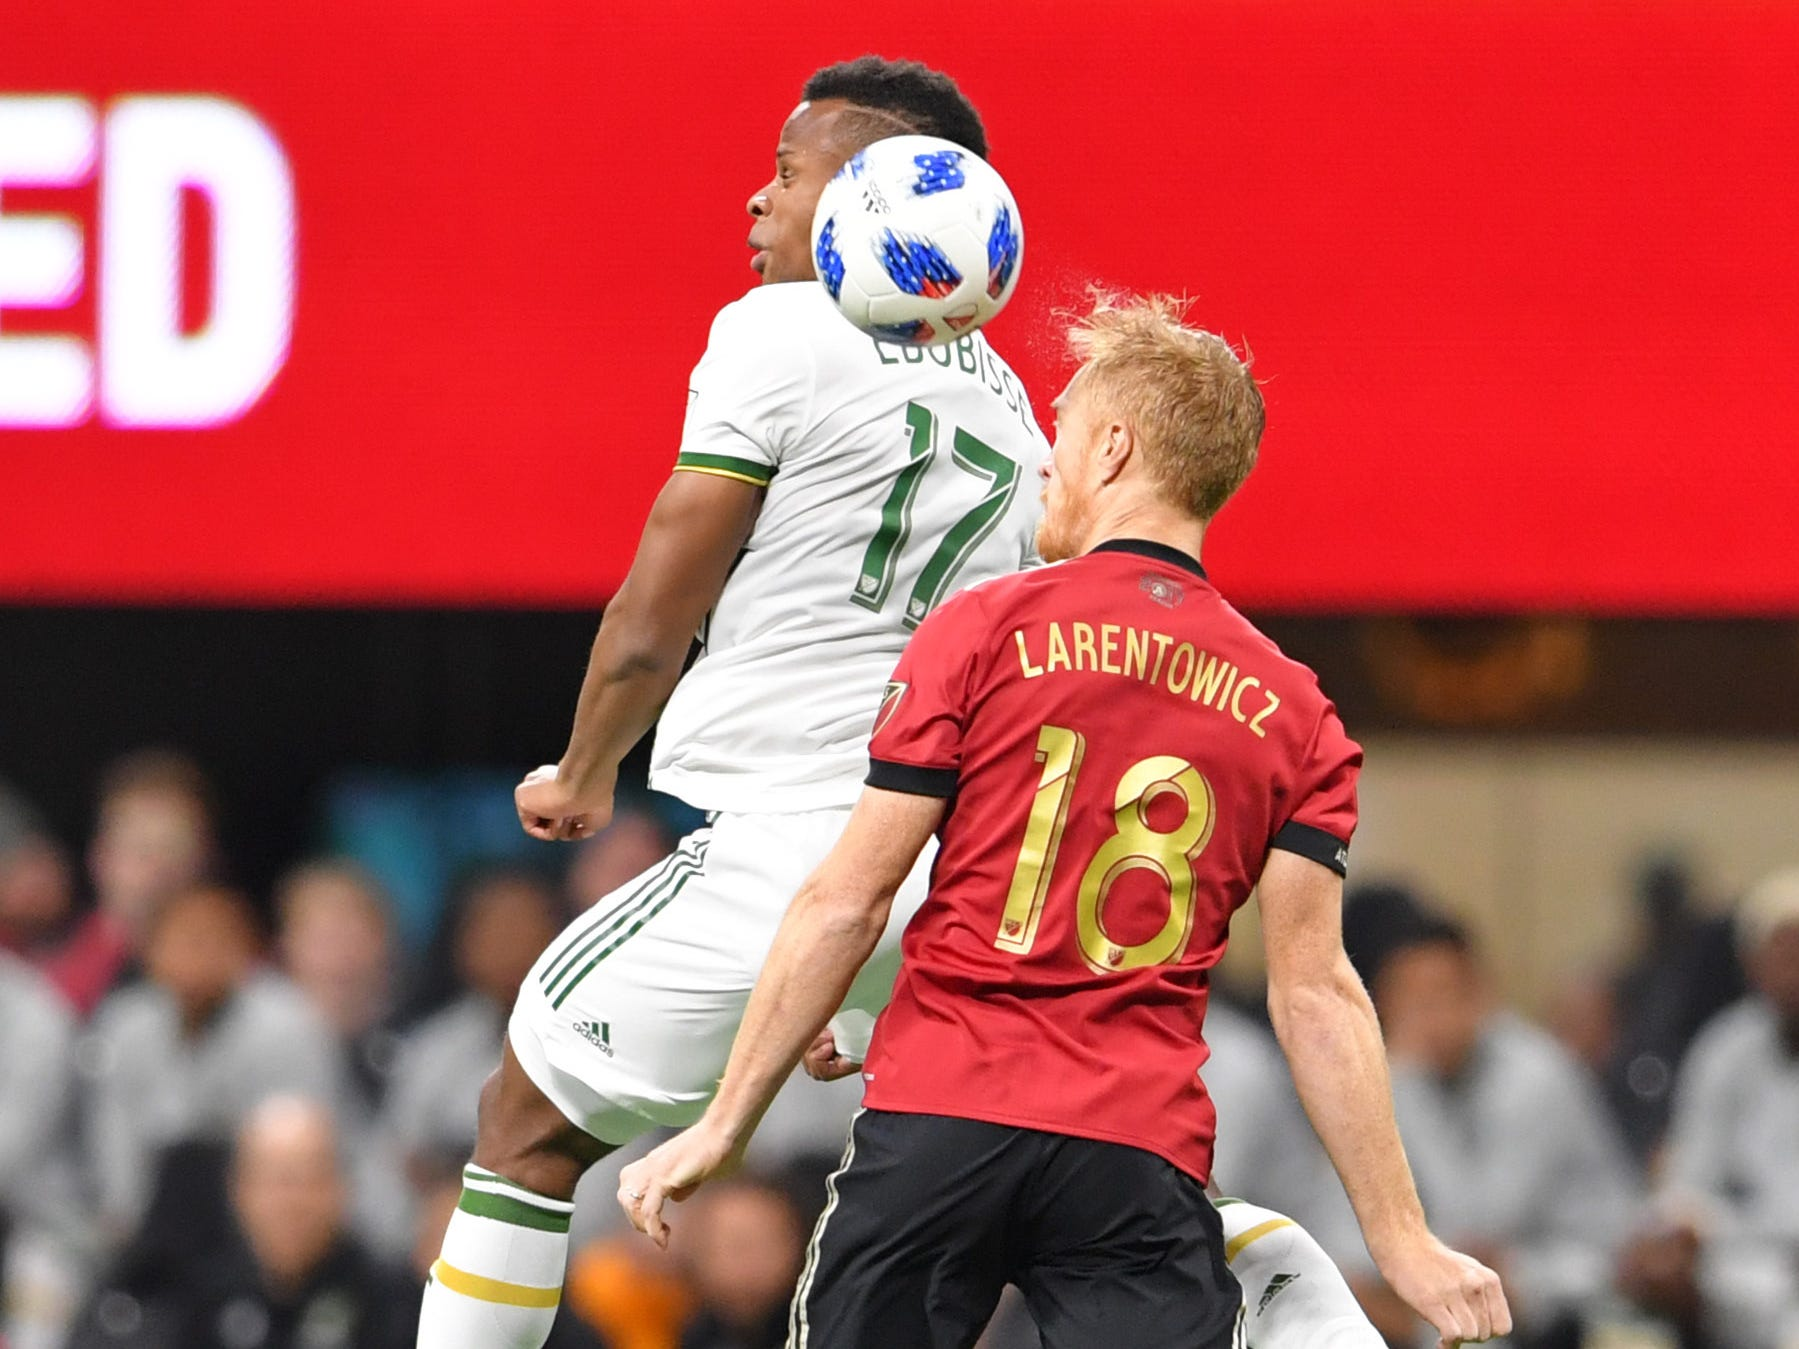 Portland Timbers forward Jeremy Ebobisse (17) battles for a header with Atlanta United defender Jeff Larentowicz during the first half of the MLS Cup.